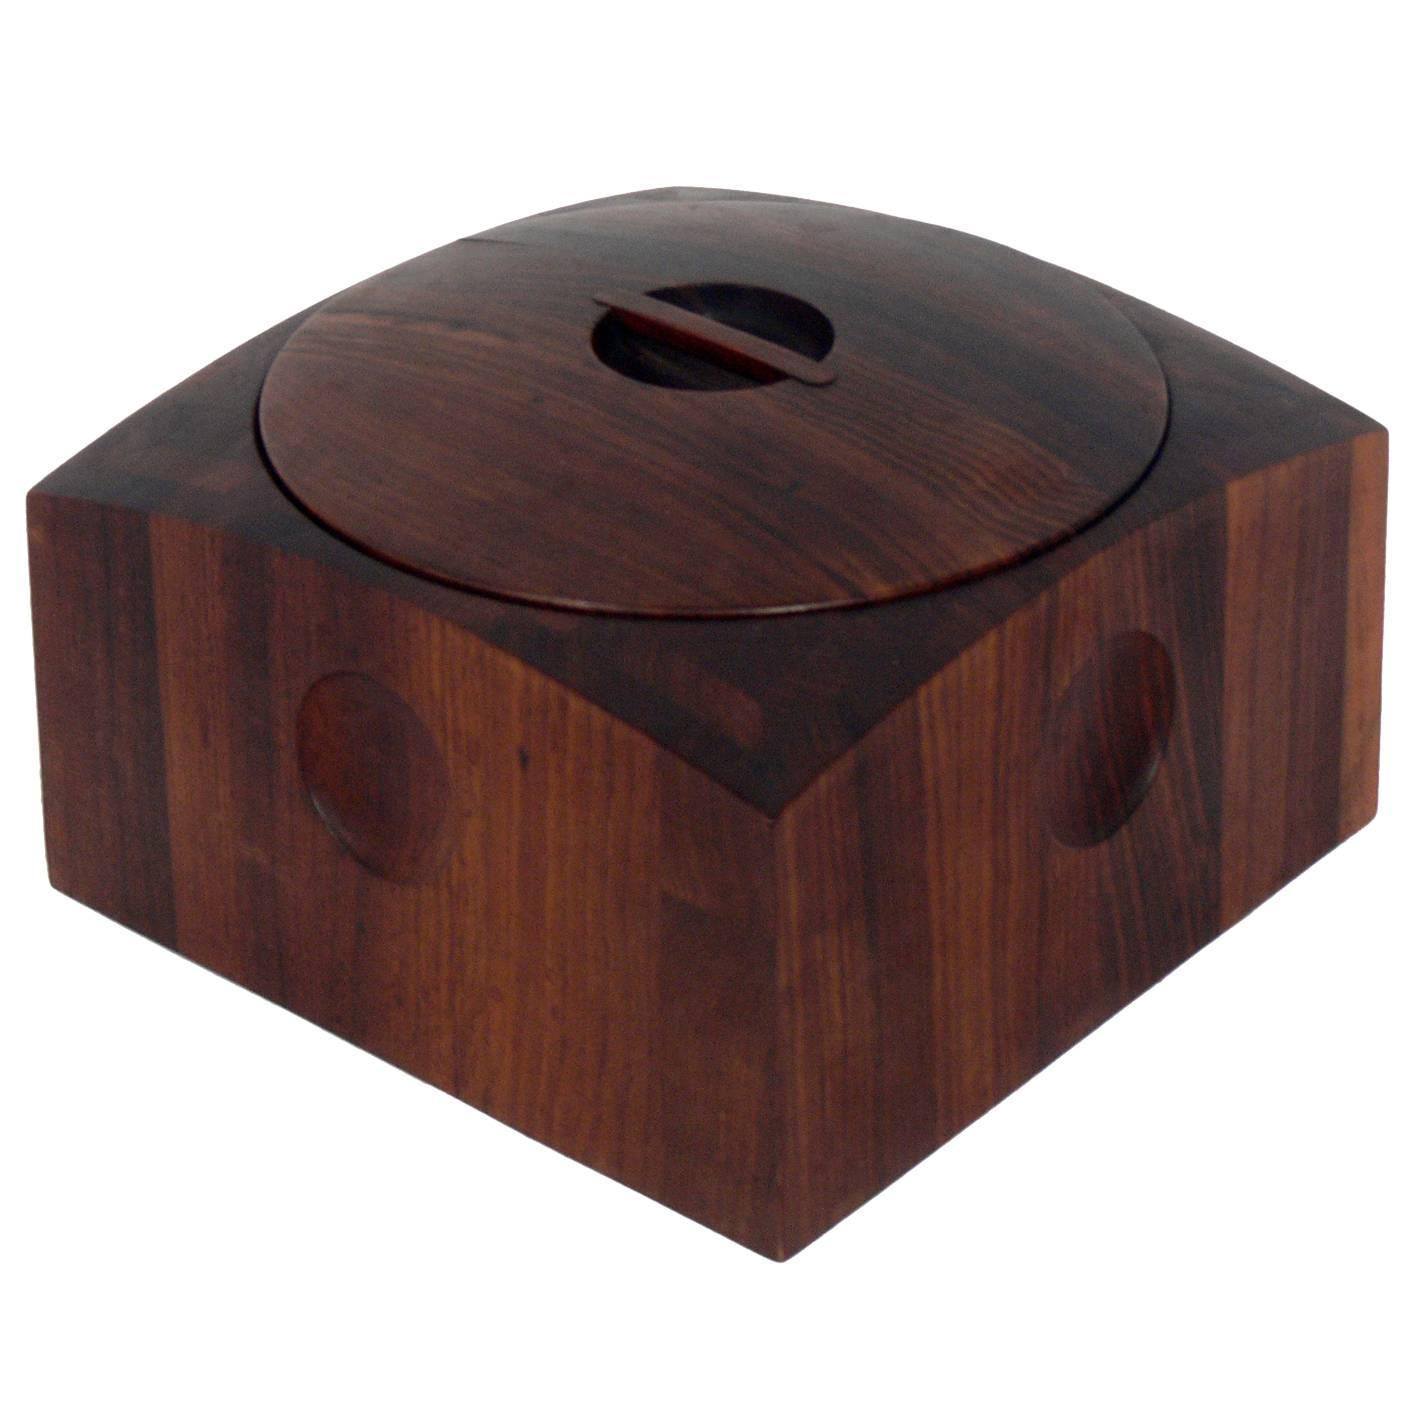 Cocobolo Furniture 44 For Sale at 1stdibs